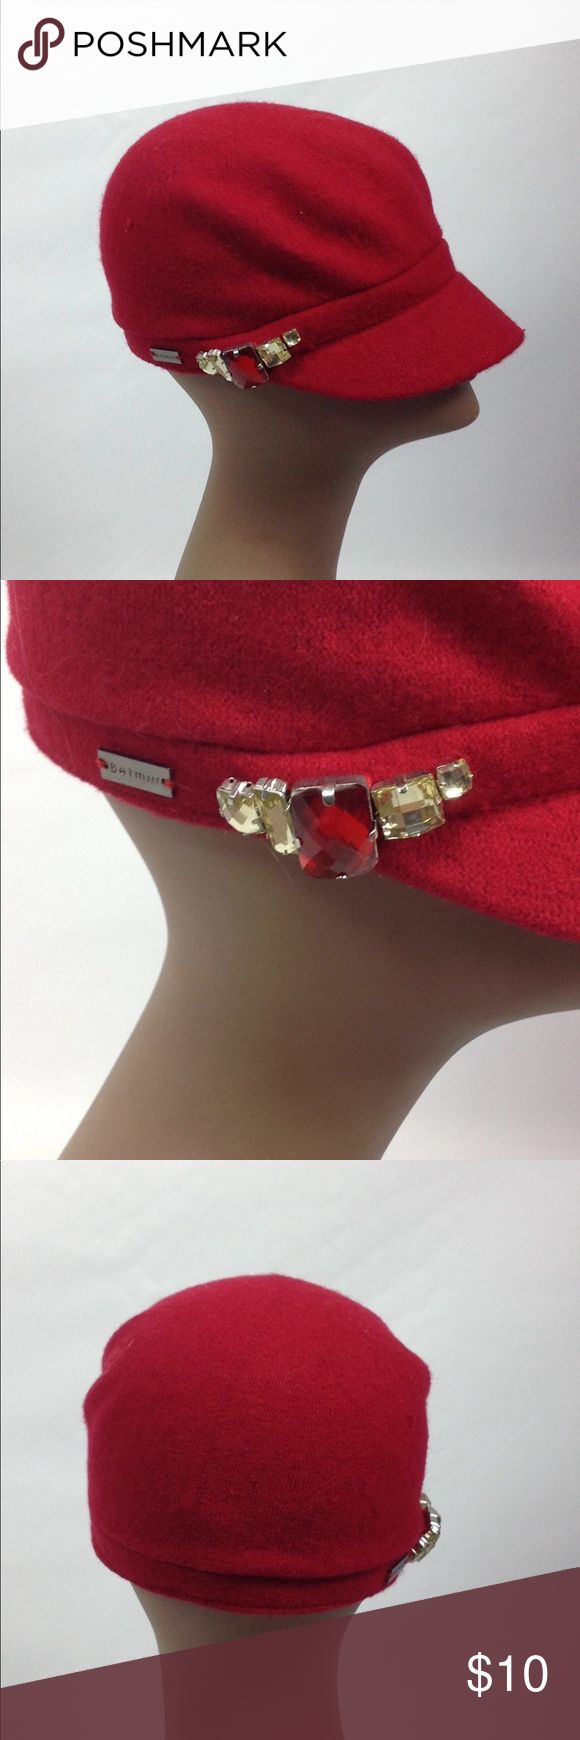 Betmar New York Red Wool Hat with Jewels Bet mar red hat has 5 jewels on the sid…